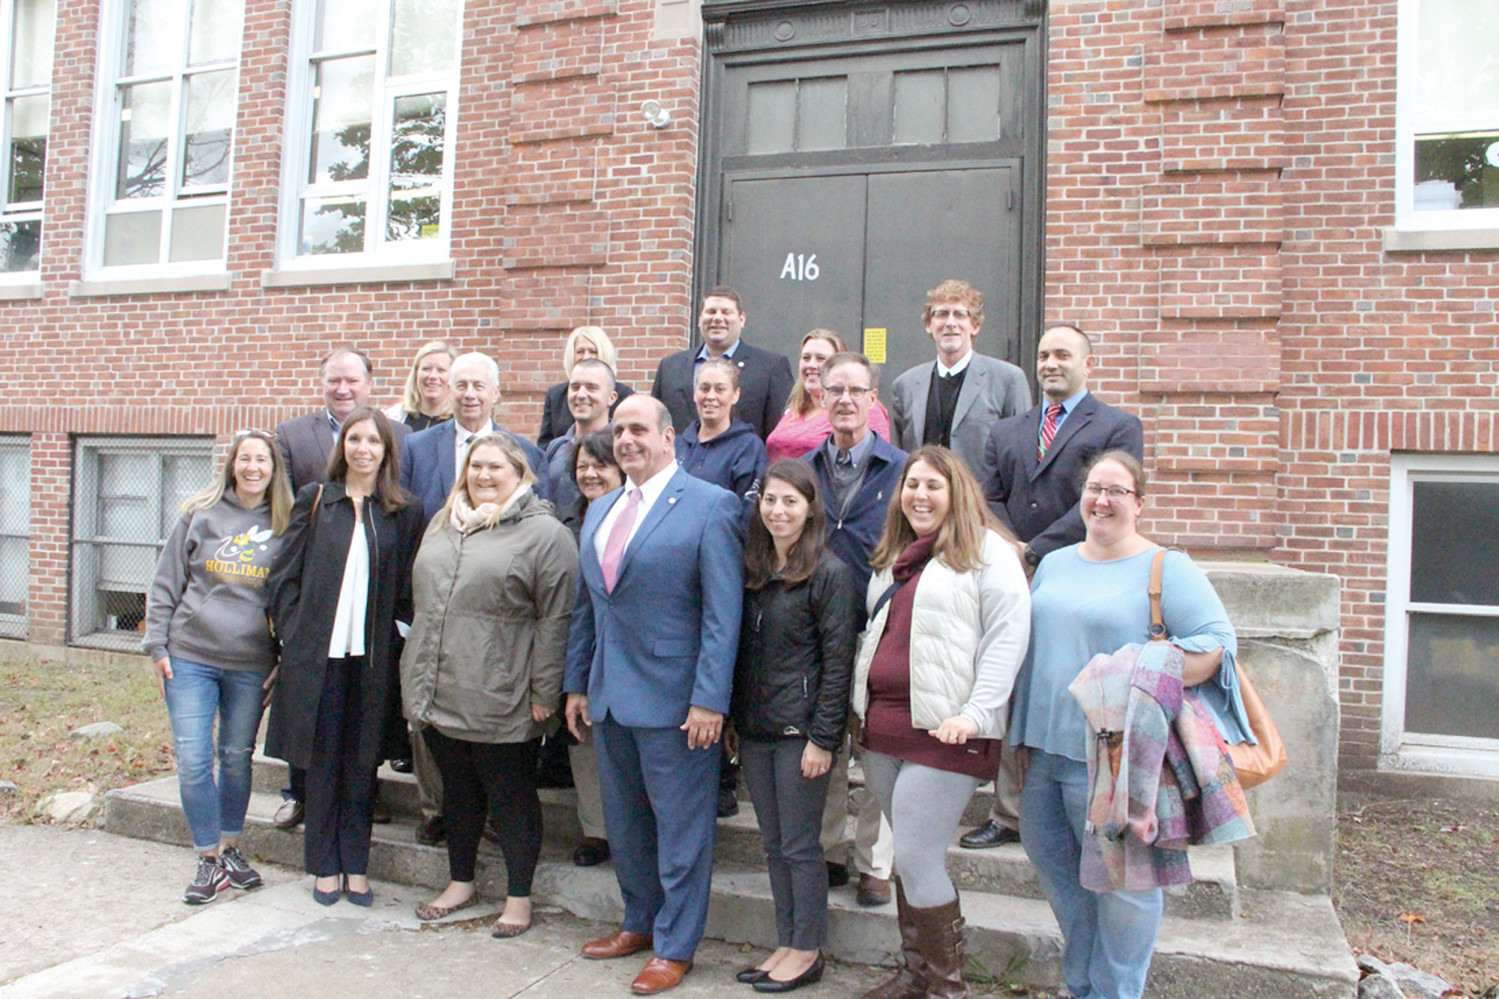 ON THE STEP OF IMPROVEMENTS: Mayor Joseph Solomon is joined by local elected officials and members of parent teacher organizations on the steps of Greenwood School in a show of support for the $40 million Warwick school bond on the November ballot.